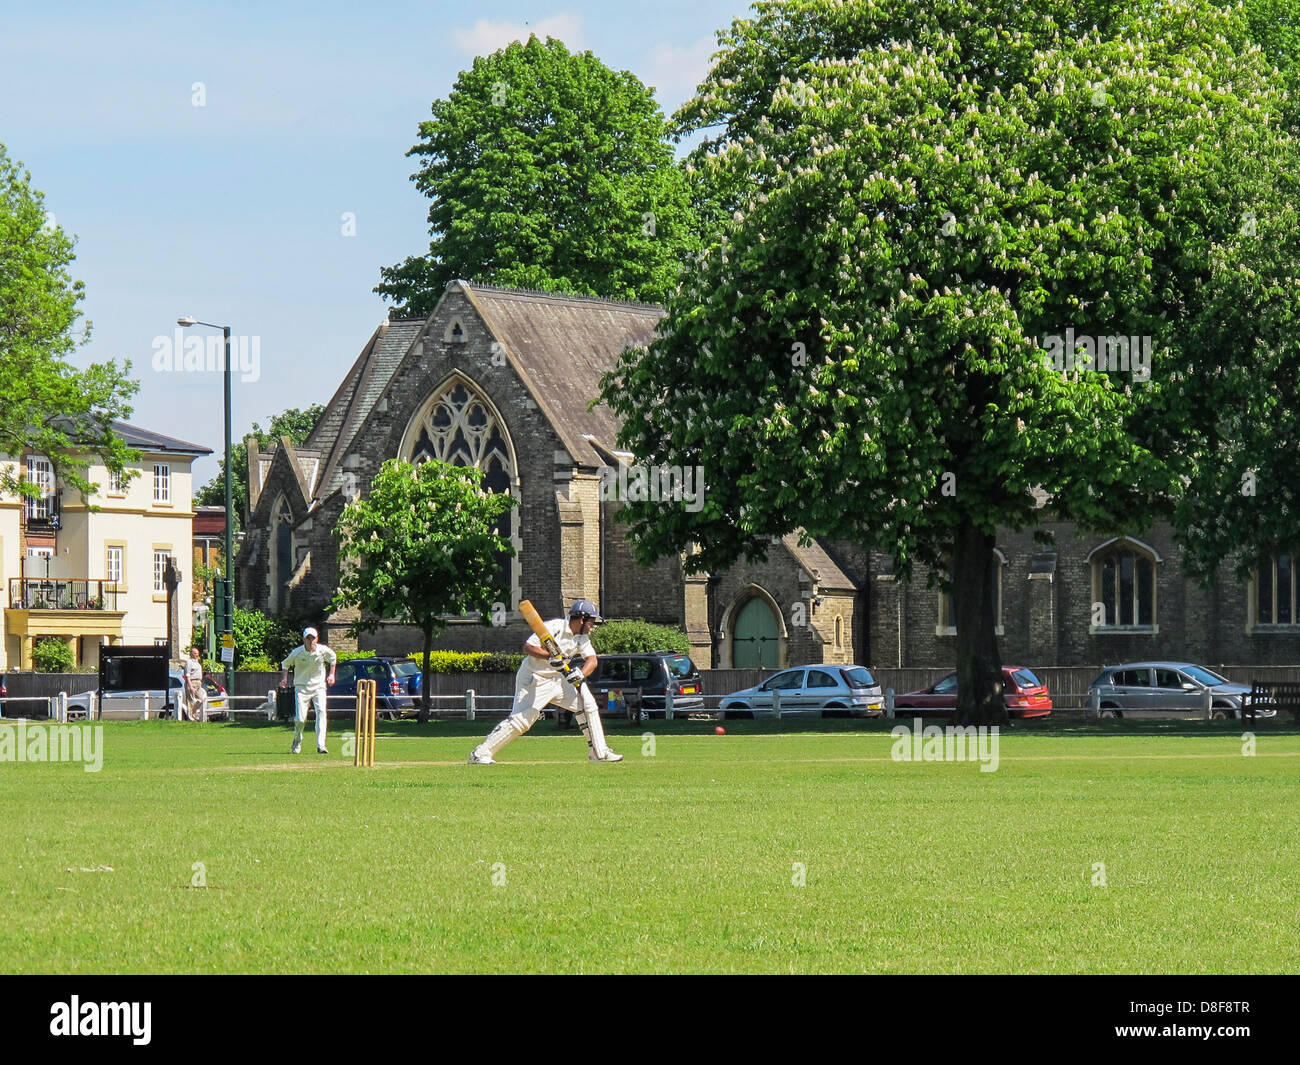 Batsman hits ball as cricket is played on Twickenham Green in Summer - Stock Image